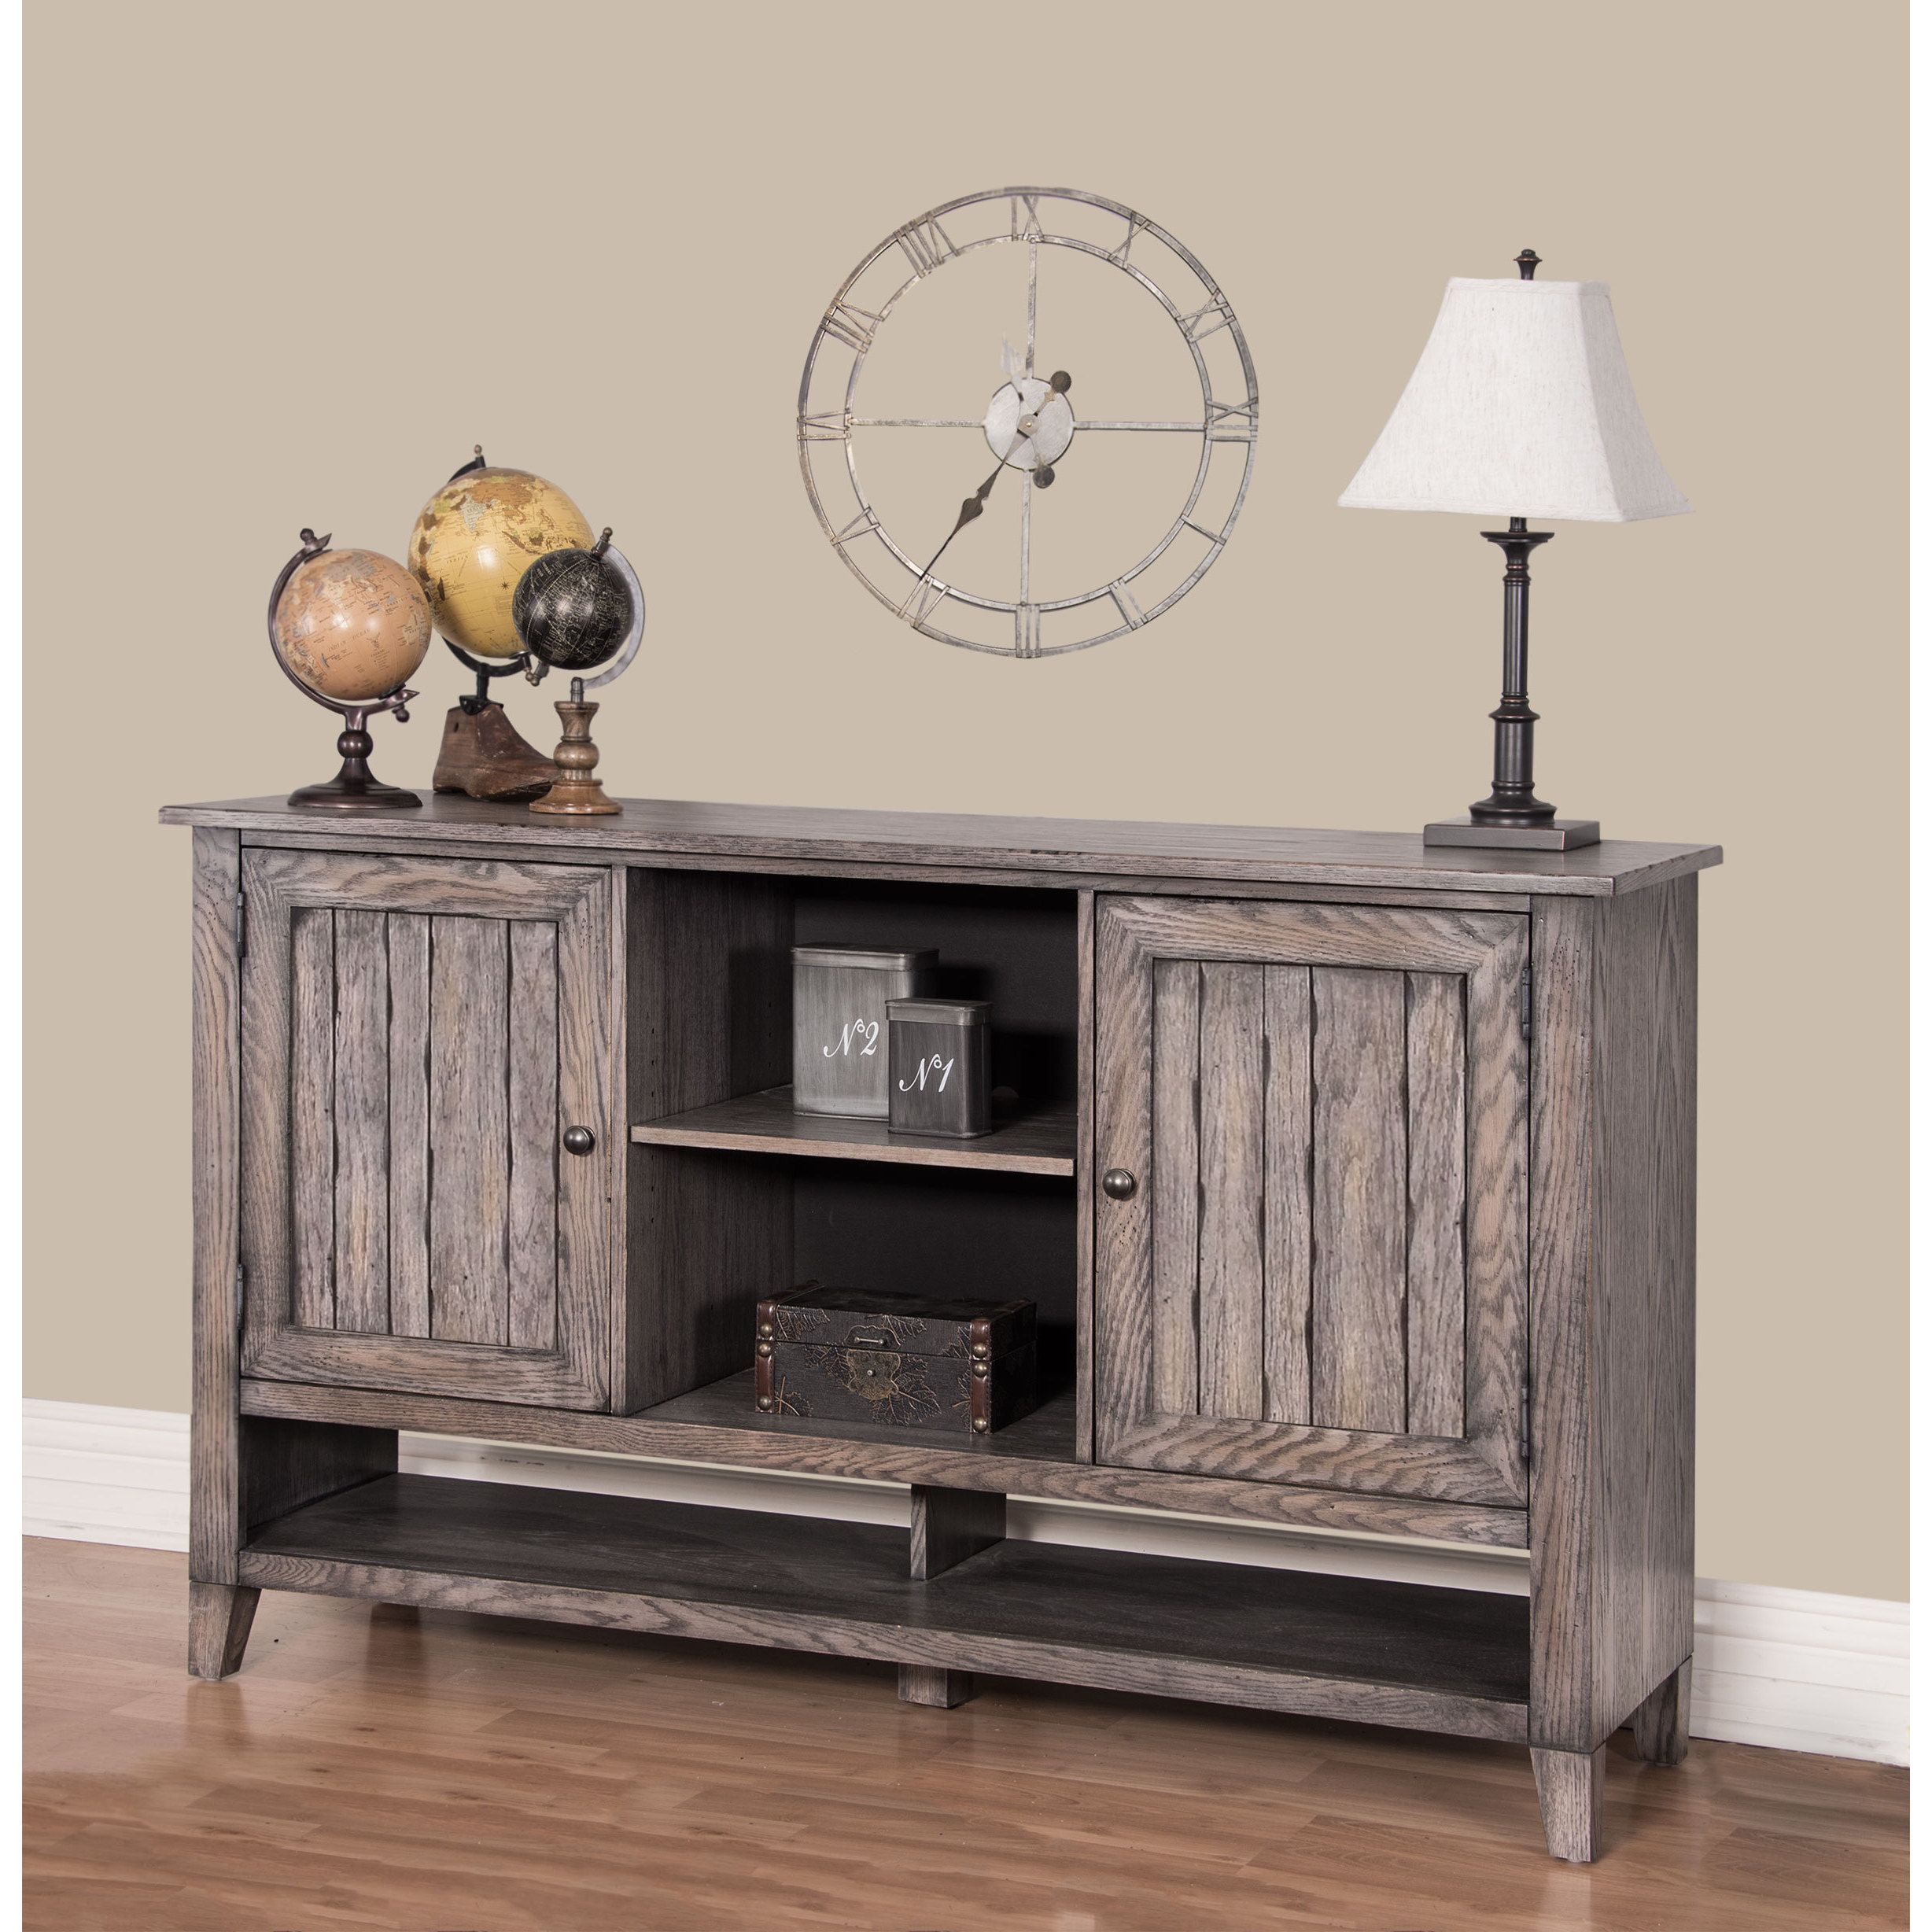 Martin hadlock deluxe living room console weathered greige brown